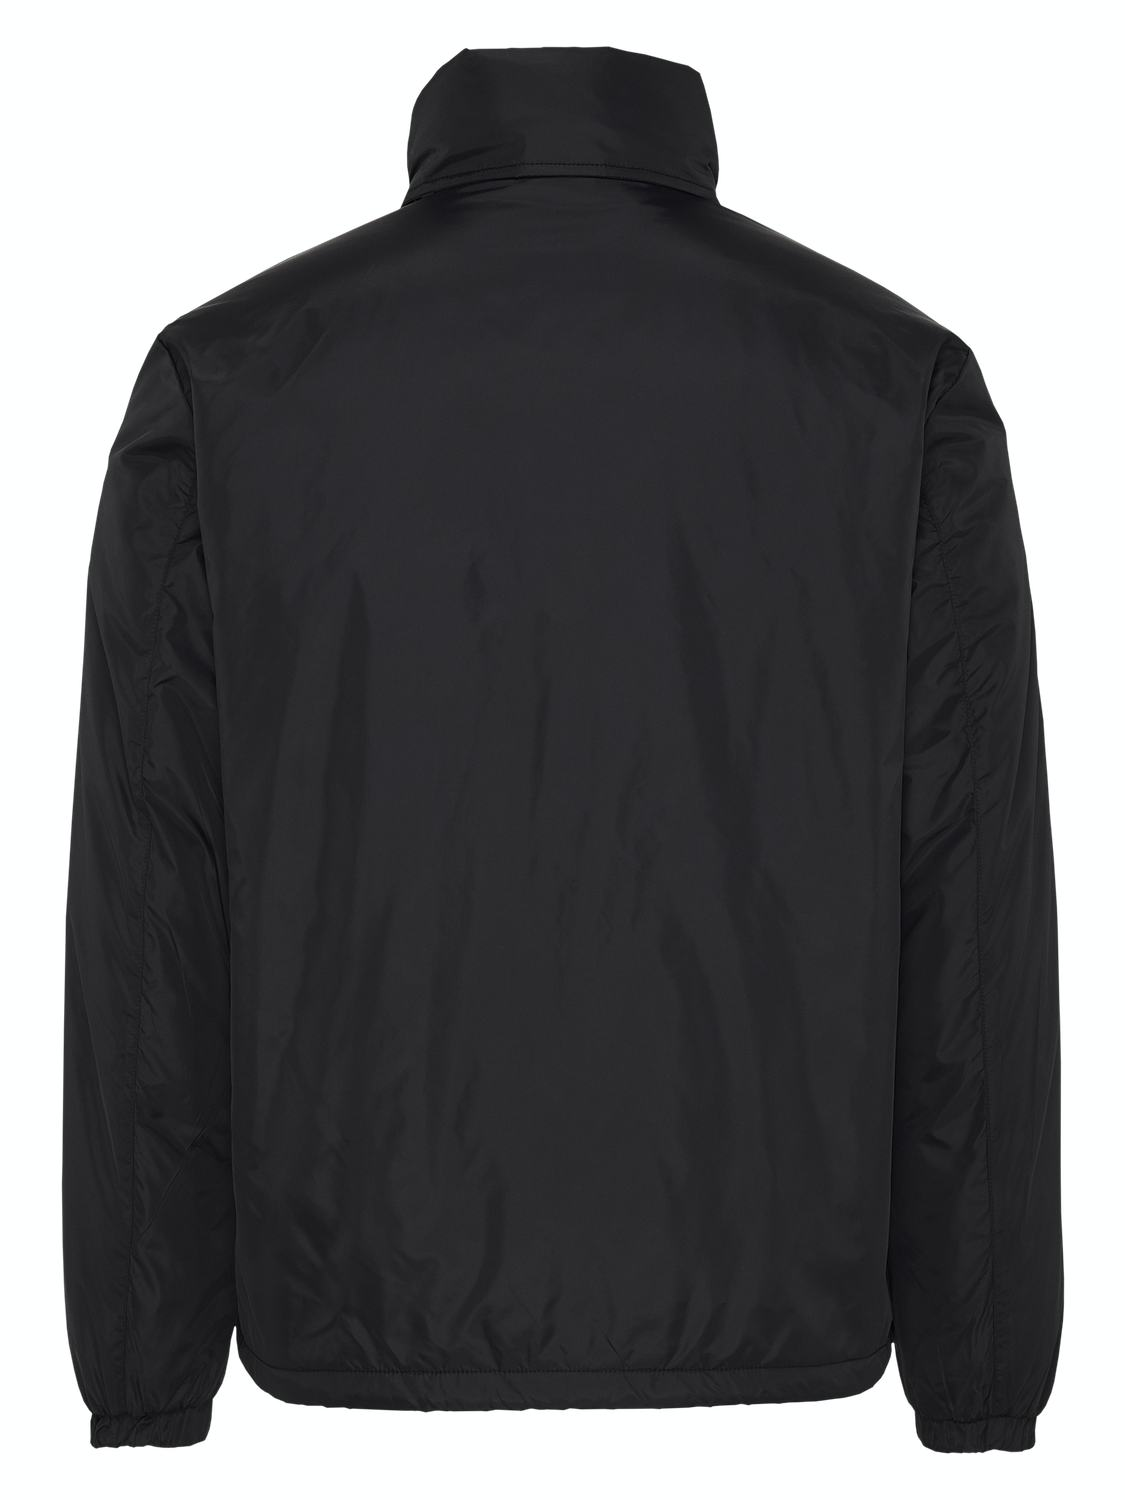 TOMMY JEANS - NYLON YOKE JACKET BLACK | GATE 36 Hobro